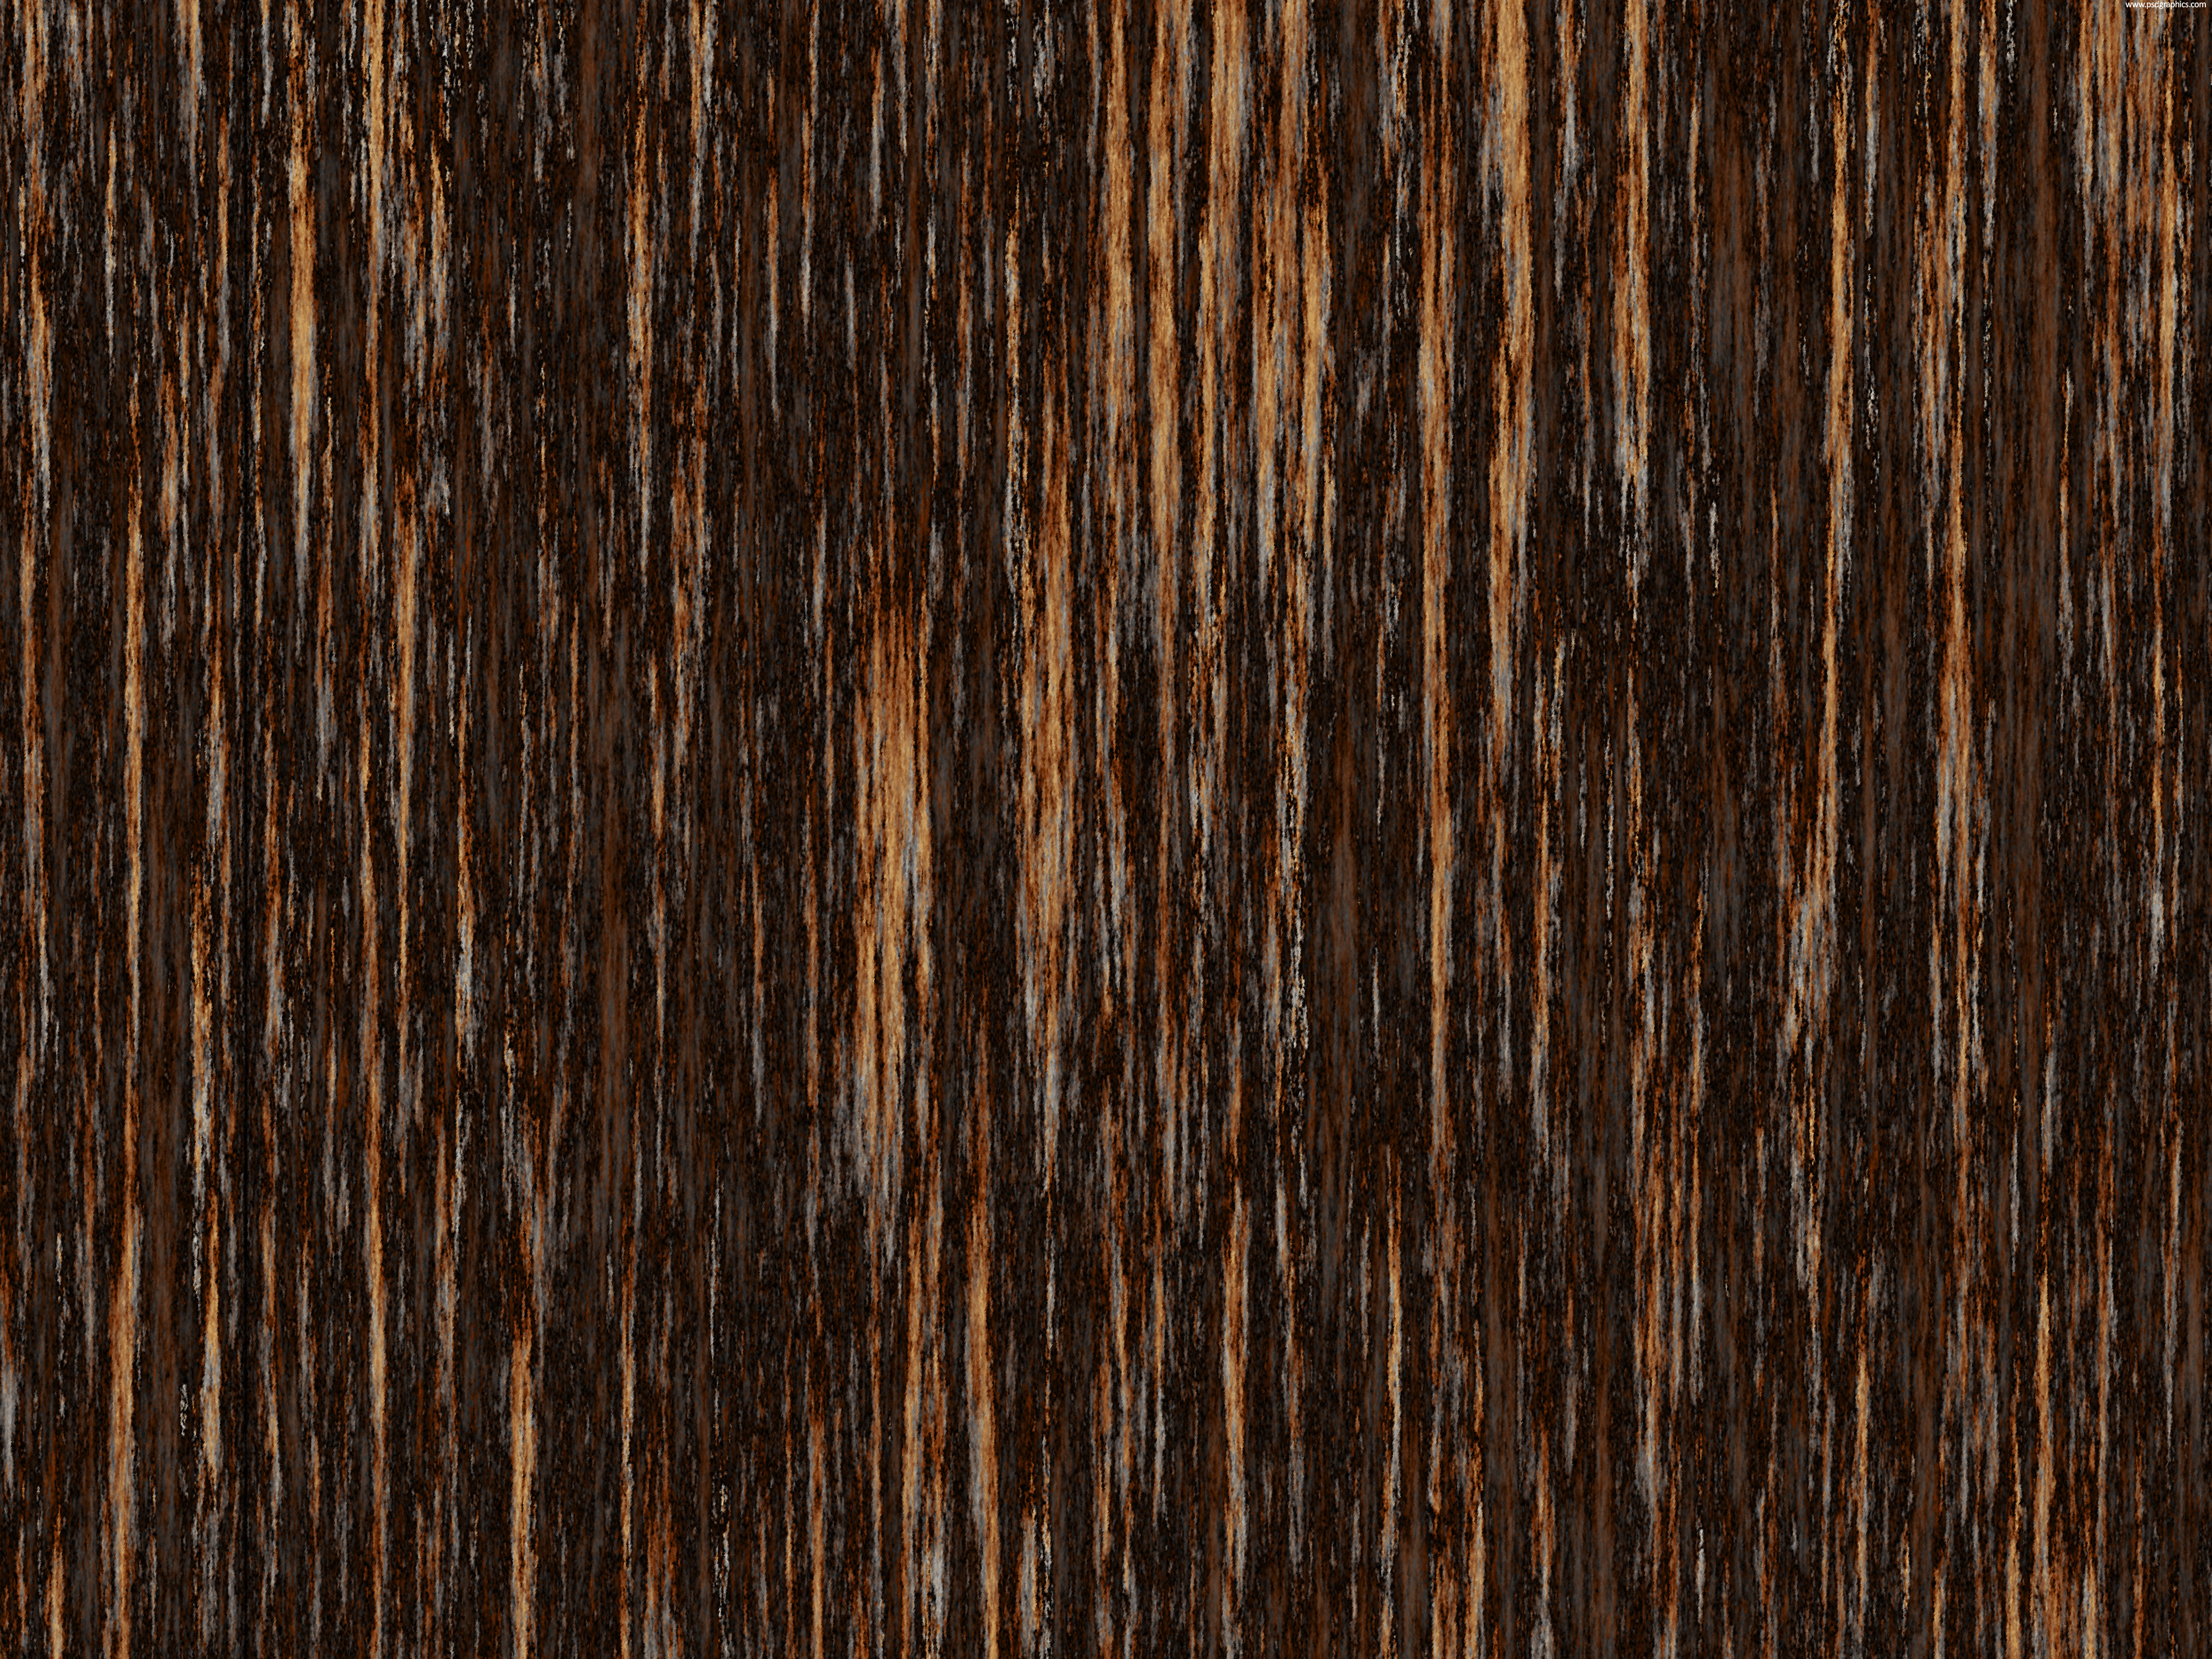 Free photo: Rough wood texture - Boards, Rough, Texture ...